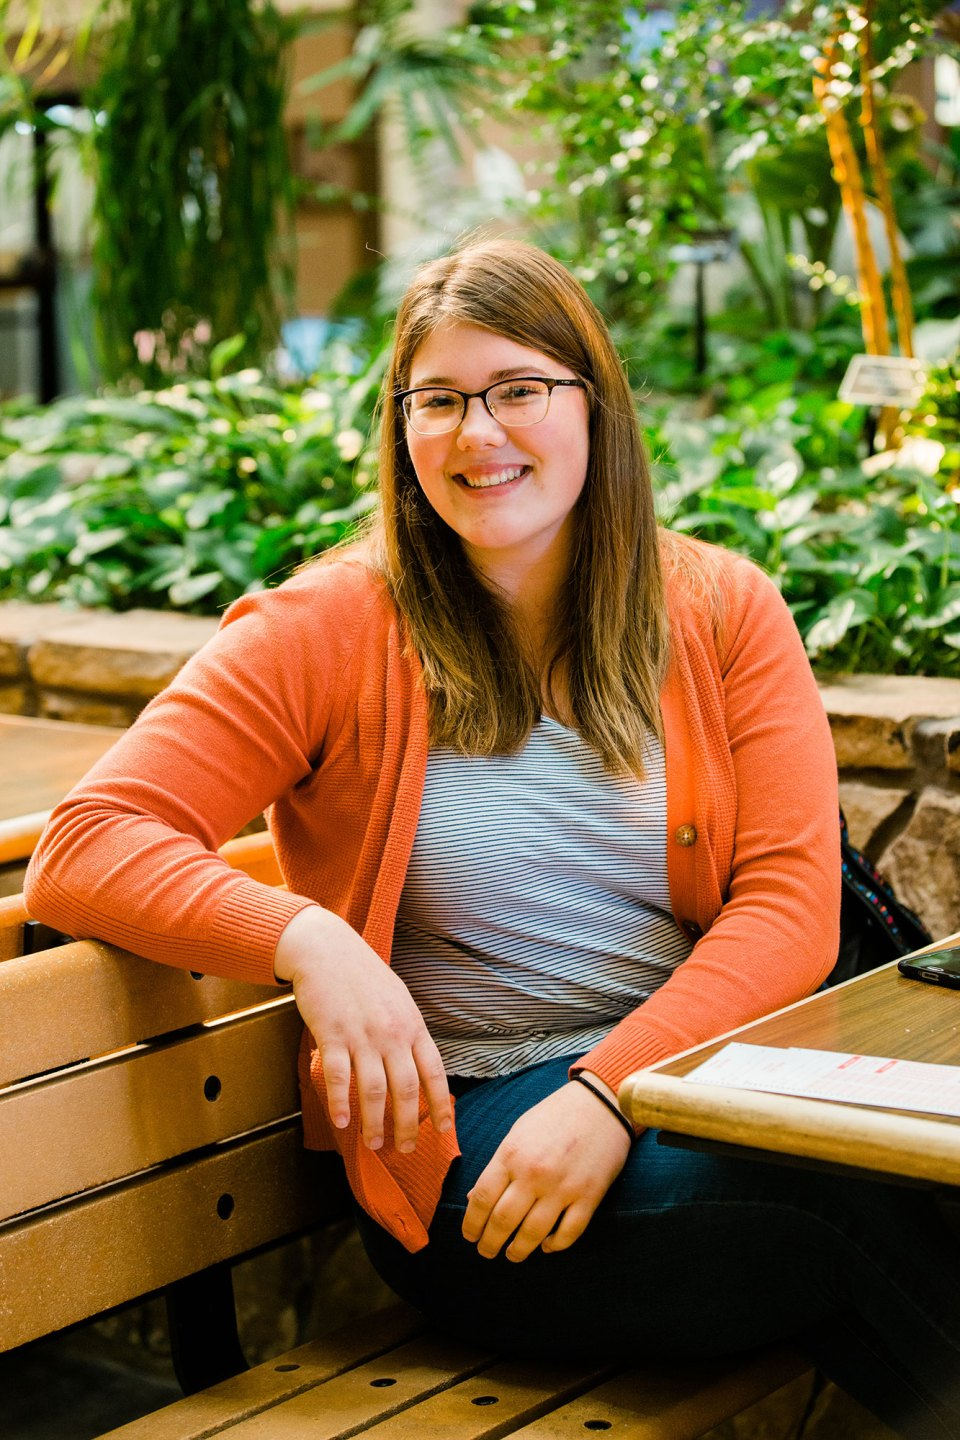 """Annabelle Smith, a political science major at the University of Montana who works part time to pay for school. If Montana's higher education property tax levy fails, the university system warns that tuition could increase by 17 to 18 percent, and """"That's a lot,"""" says Smith. """"It's super tough to be a student and to afford stuff."""""""